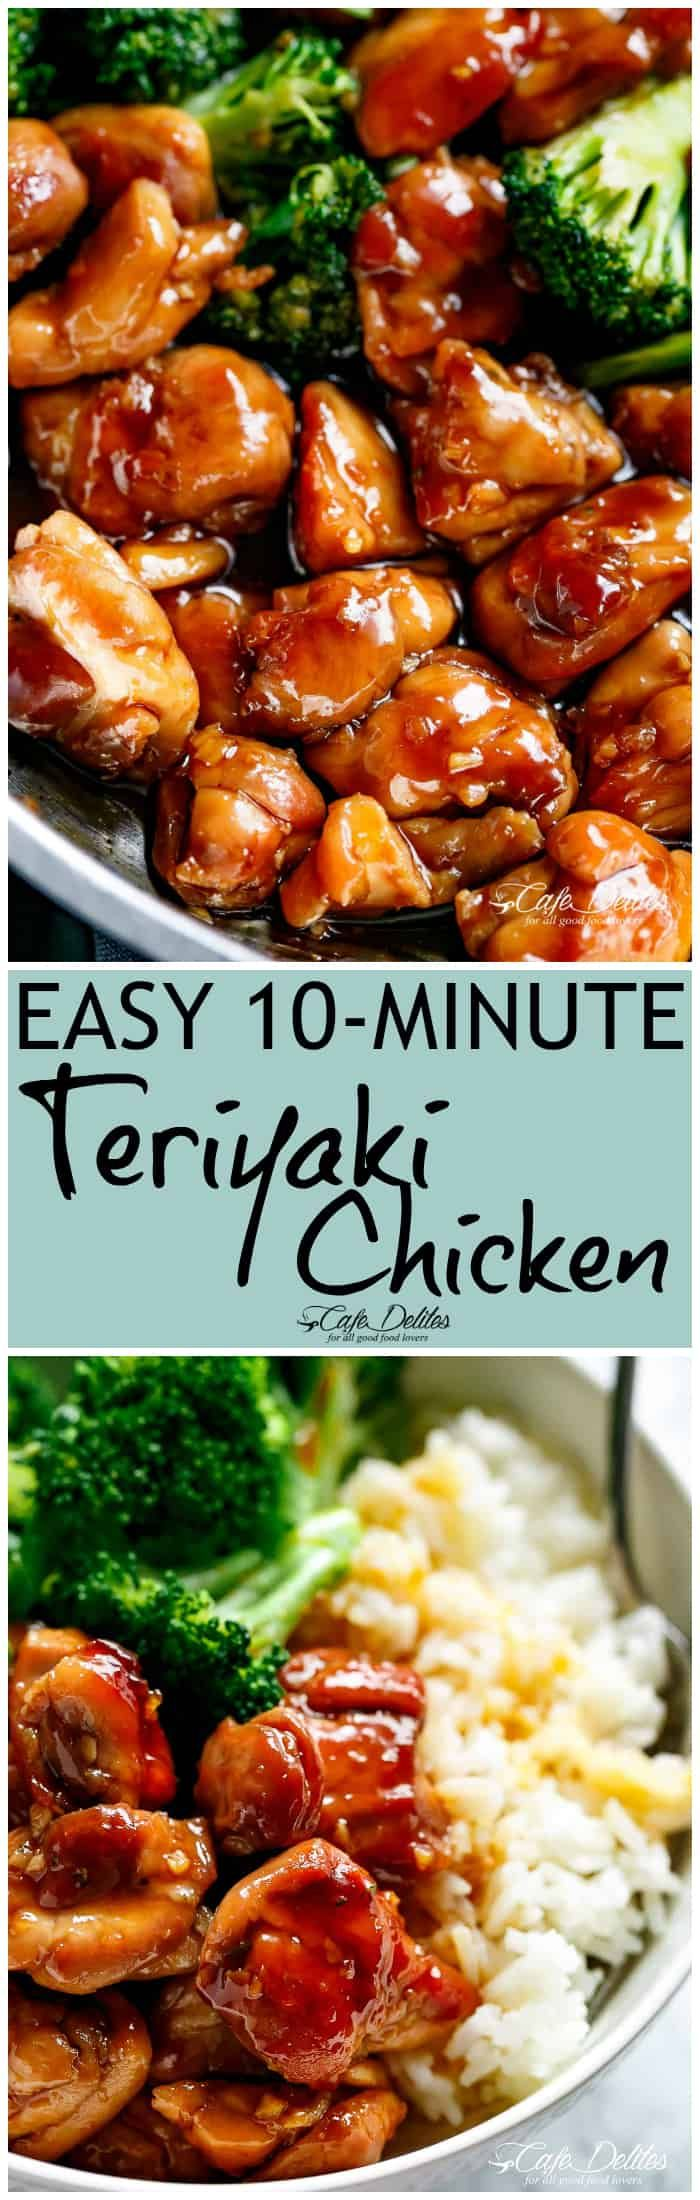 Teriyaki Chicken With Broccoli Is A Super Easy Chicken -6920